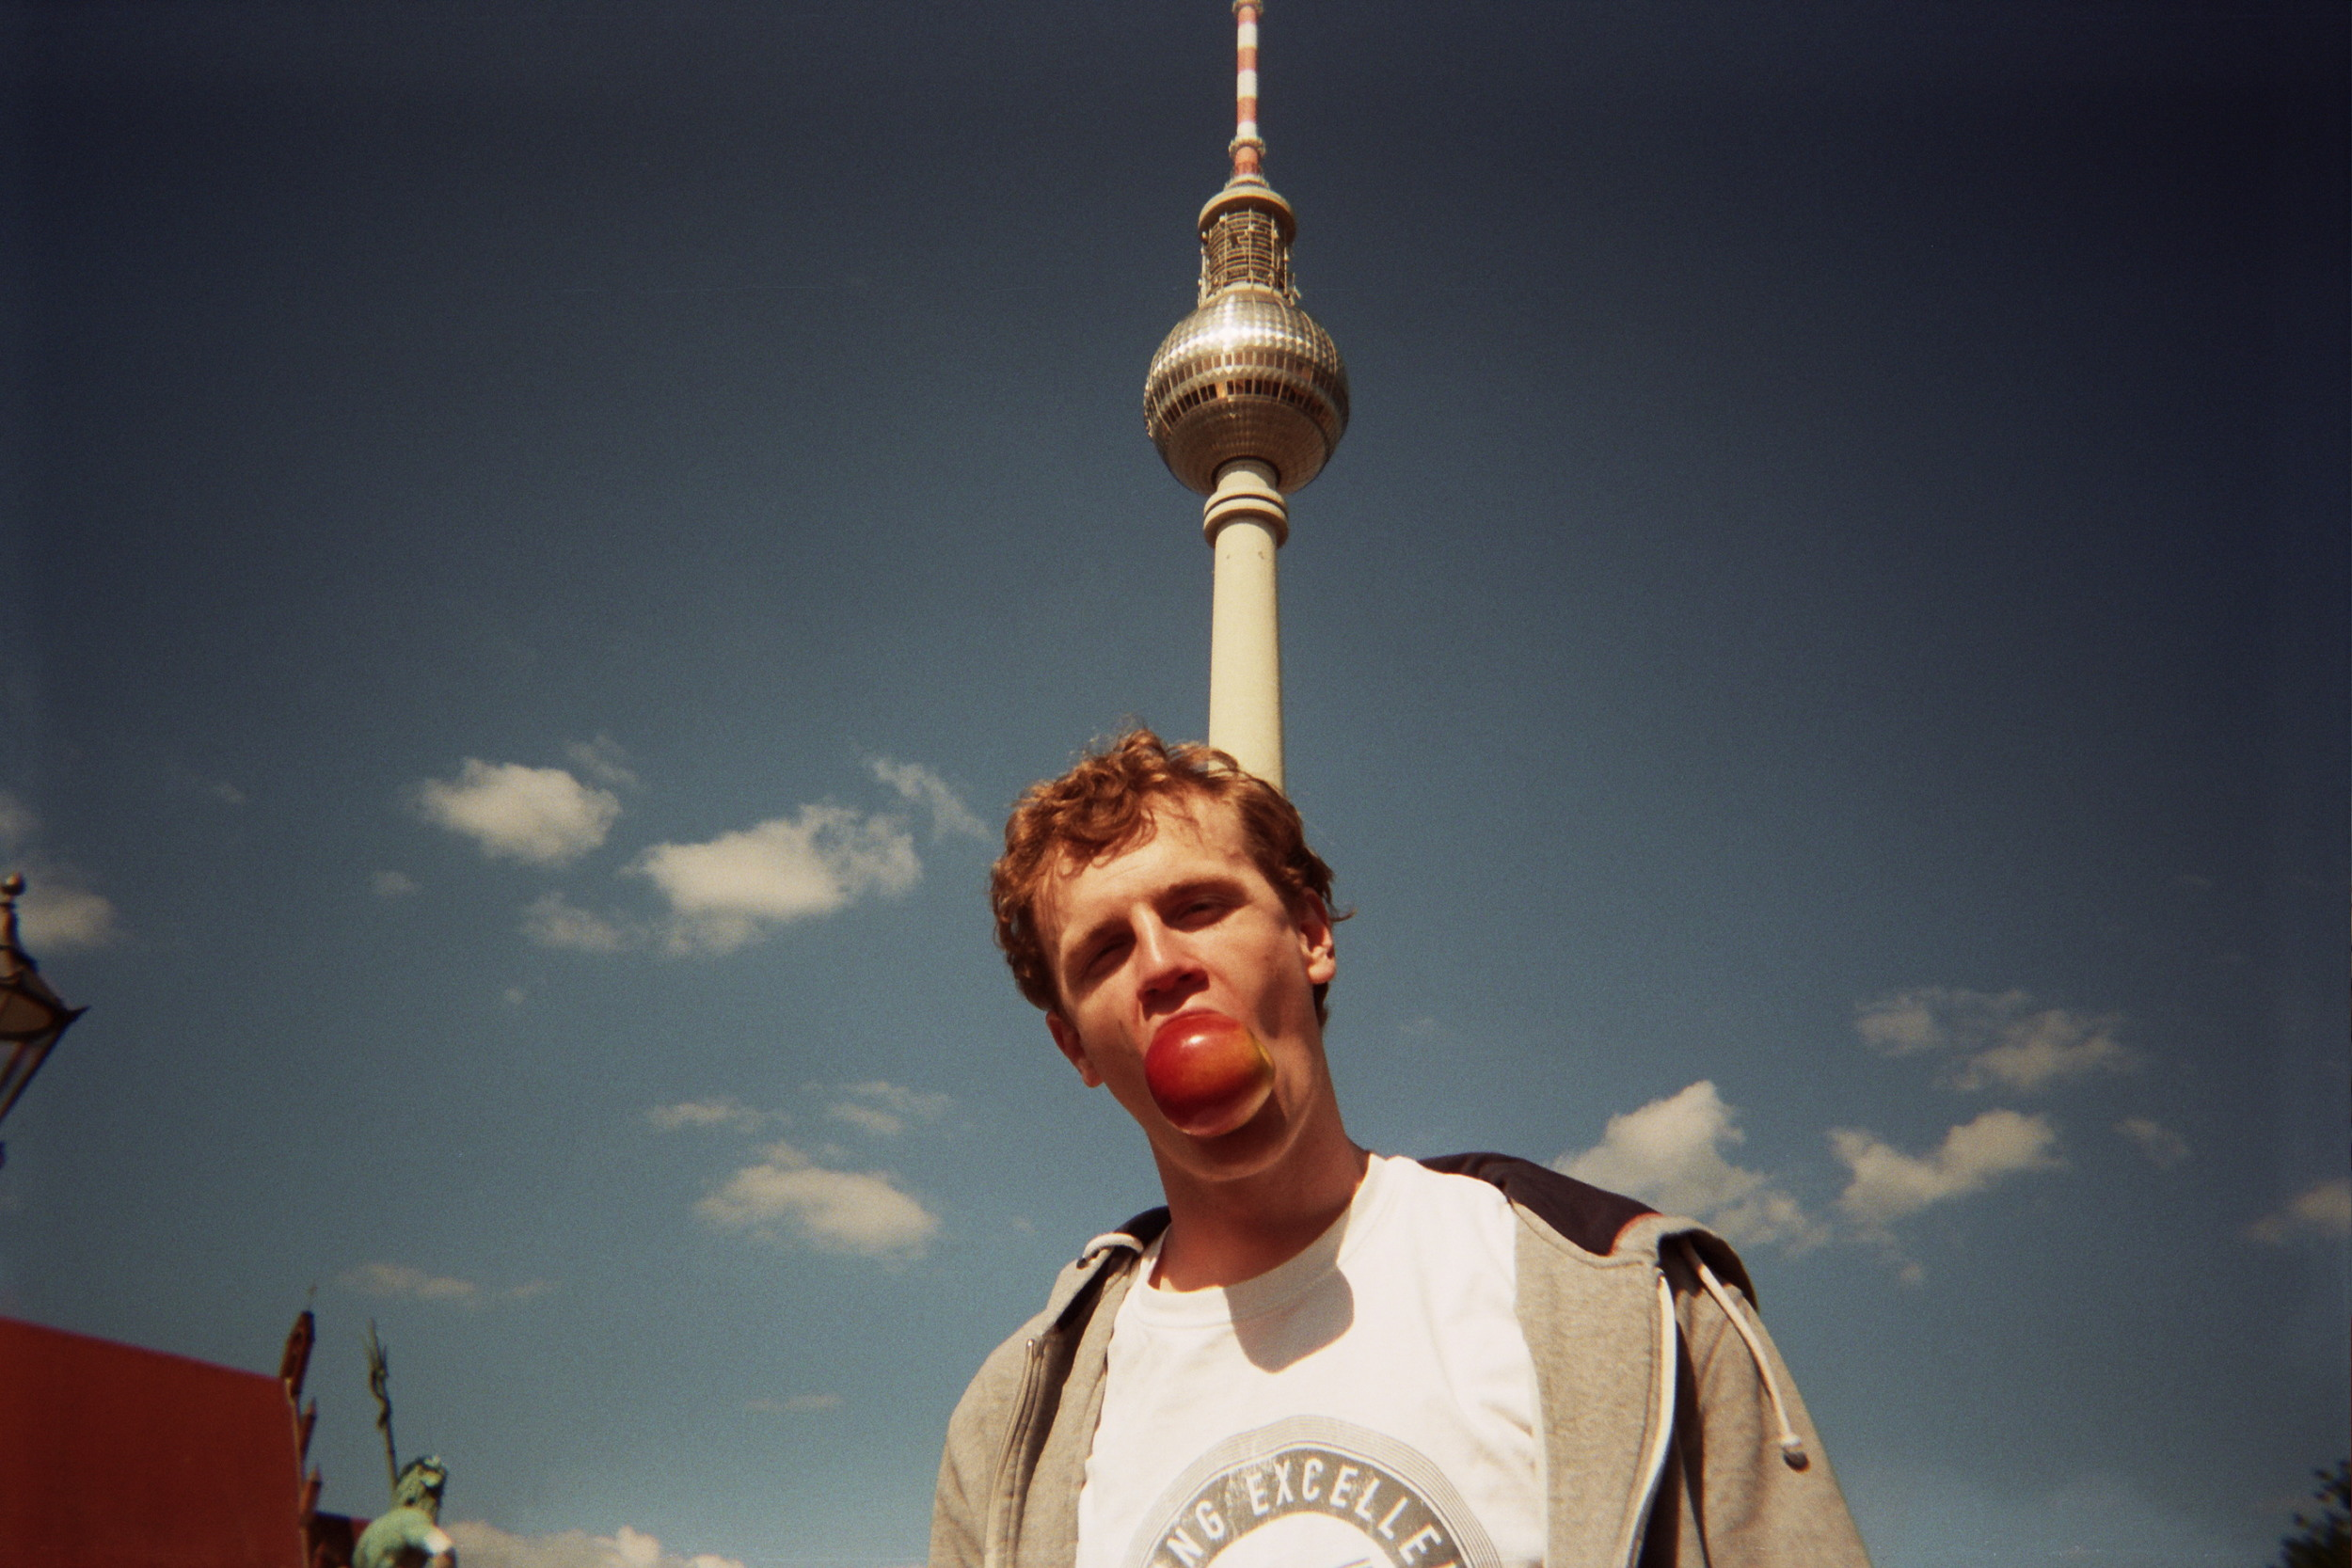 Not forgetting the famous Berlin TV Tower. And oh, put this apple in your mouth, will you?